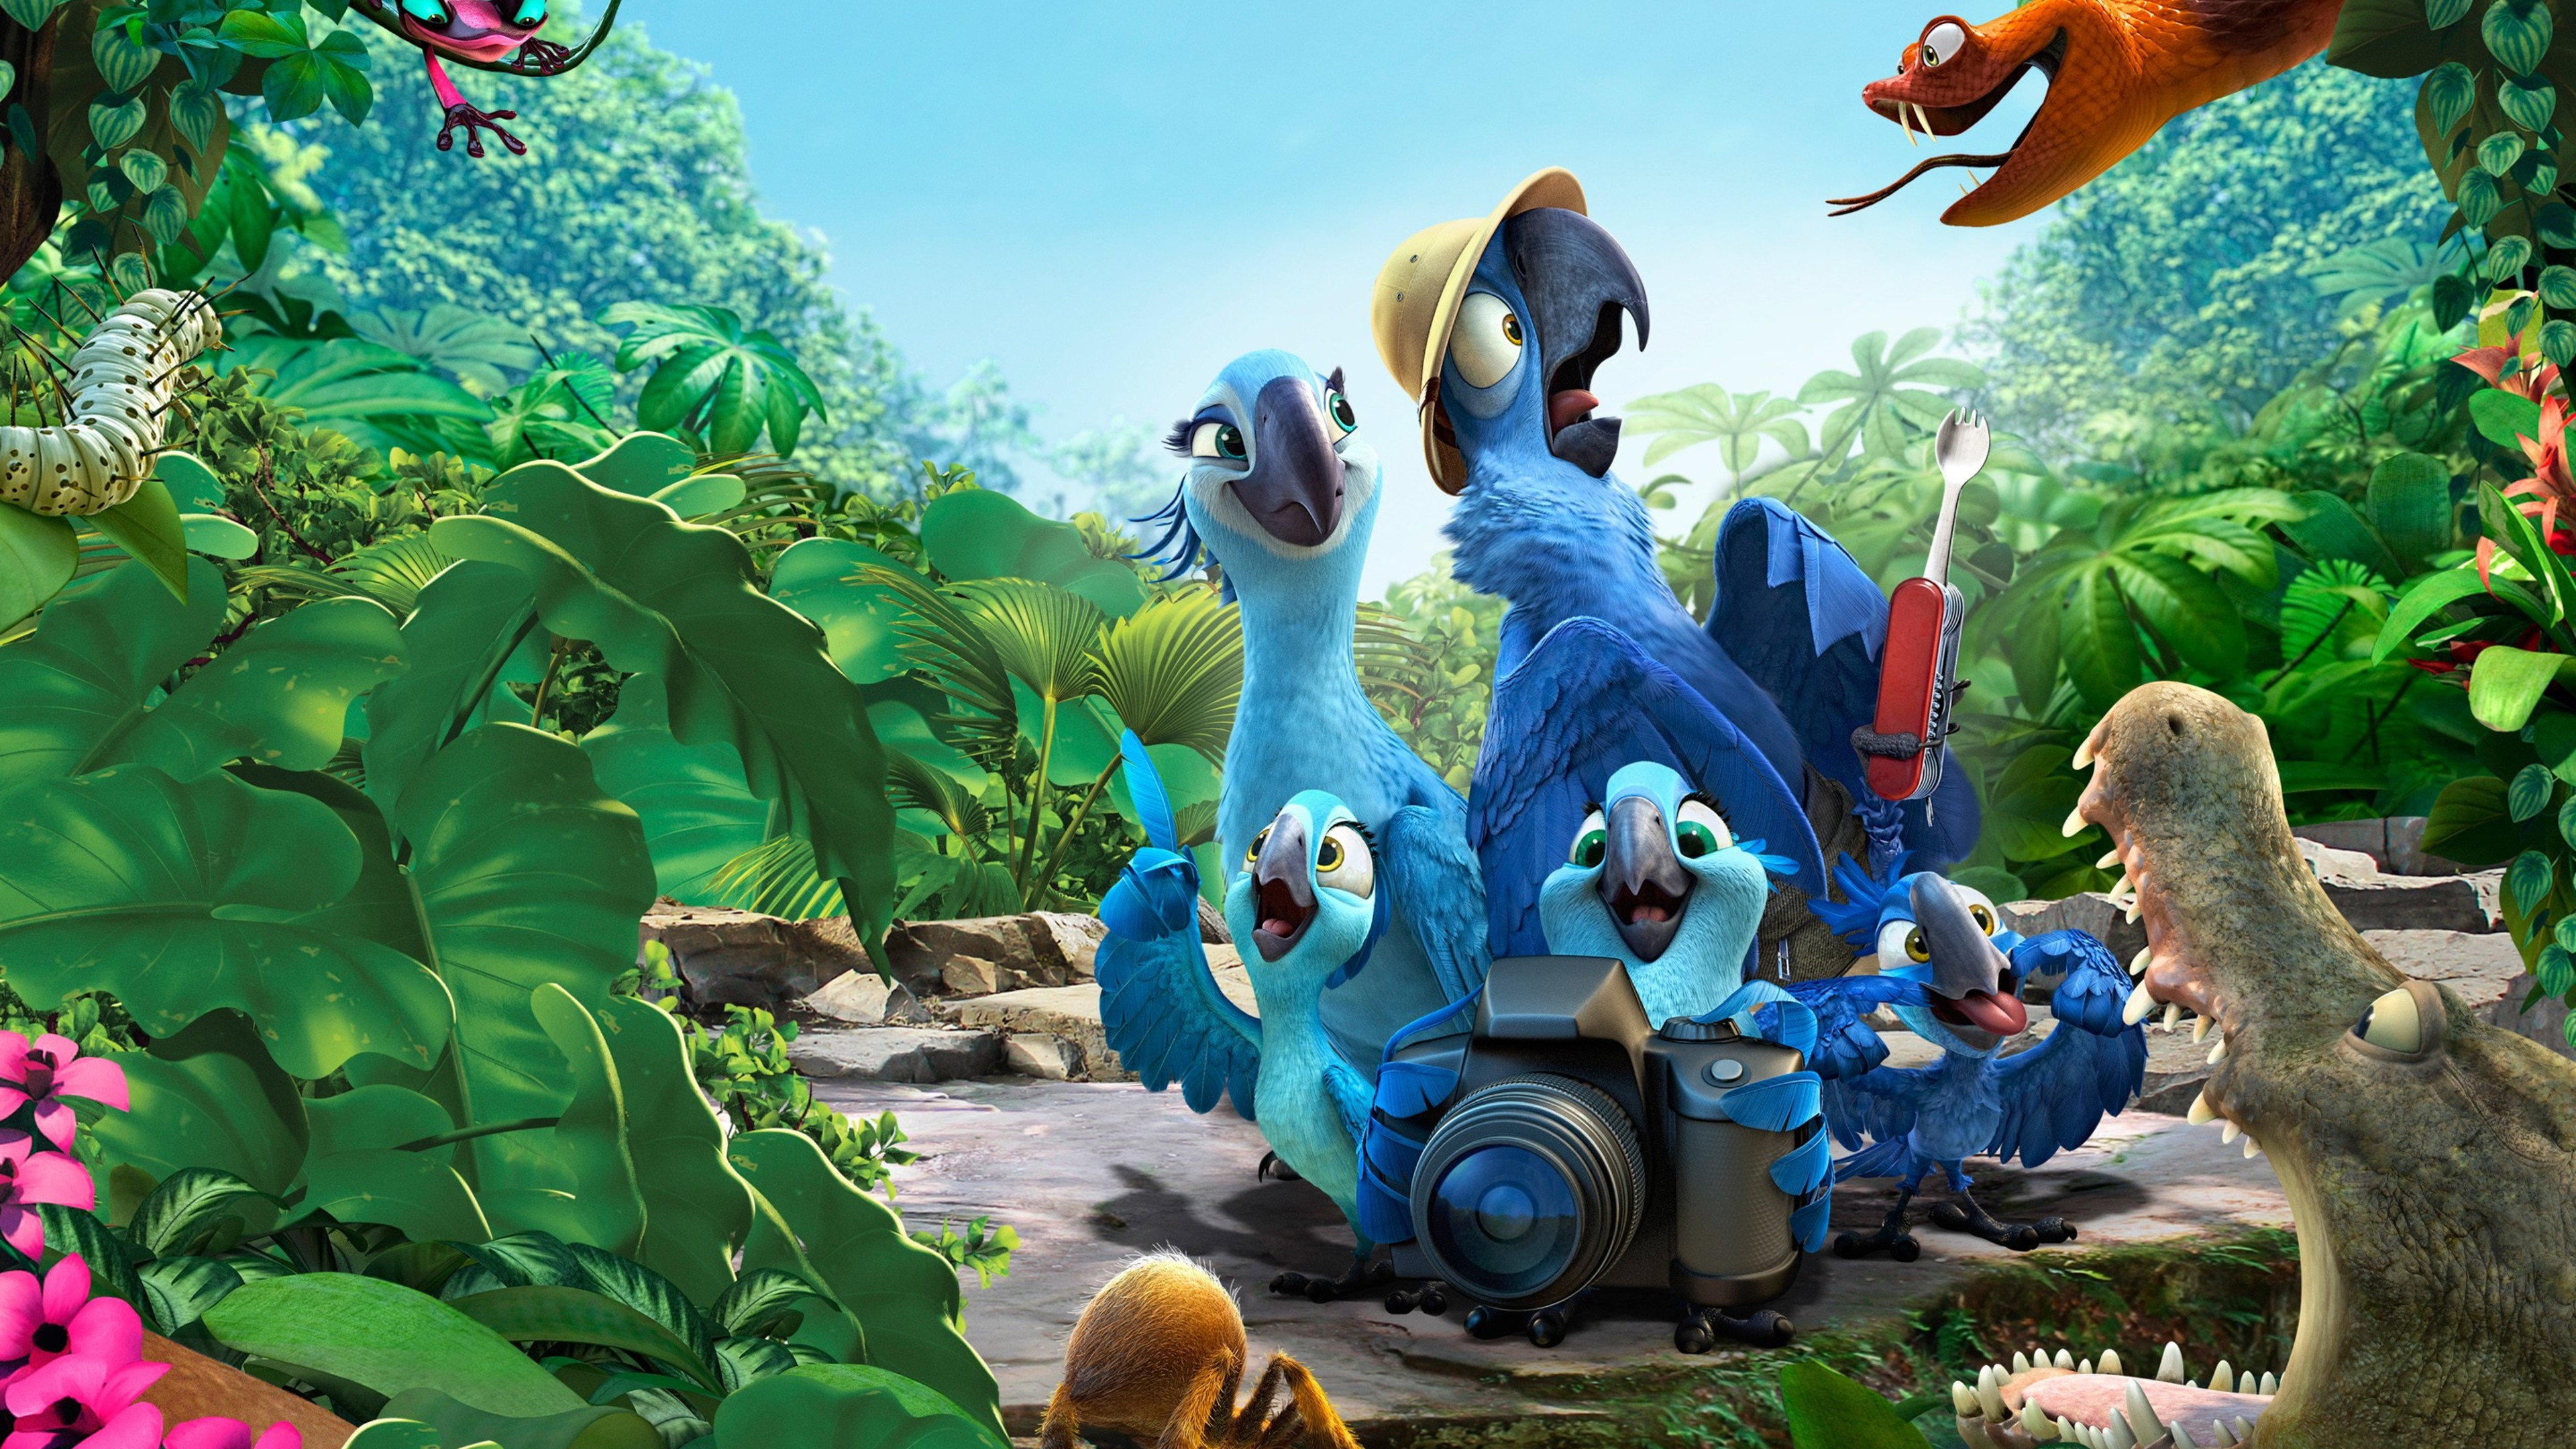 rio 2 full movie in hindi free download for mobile